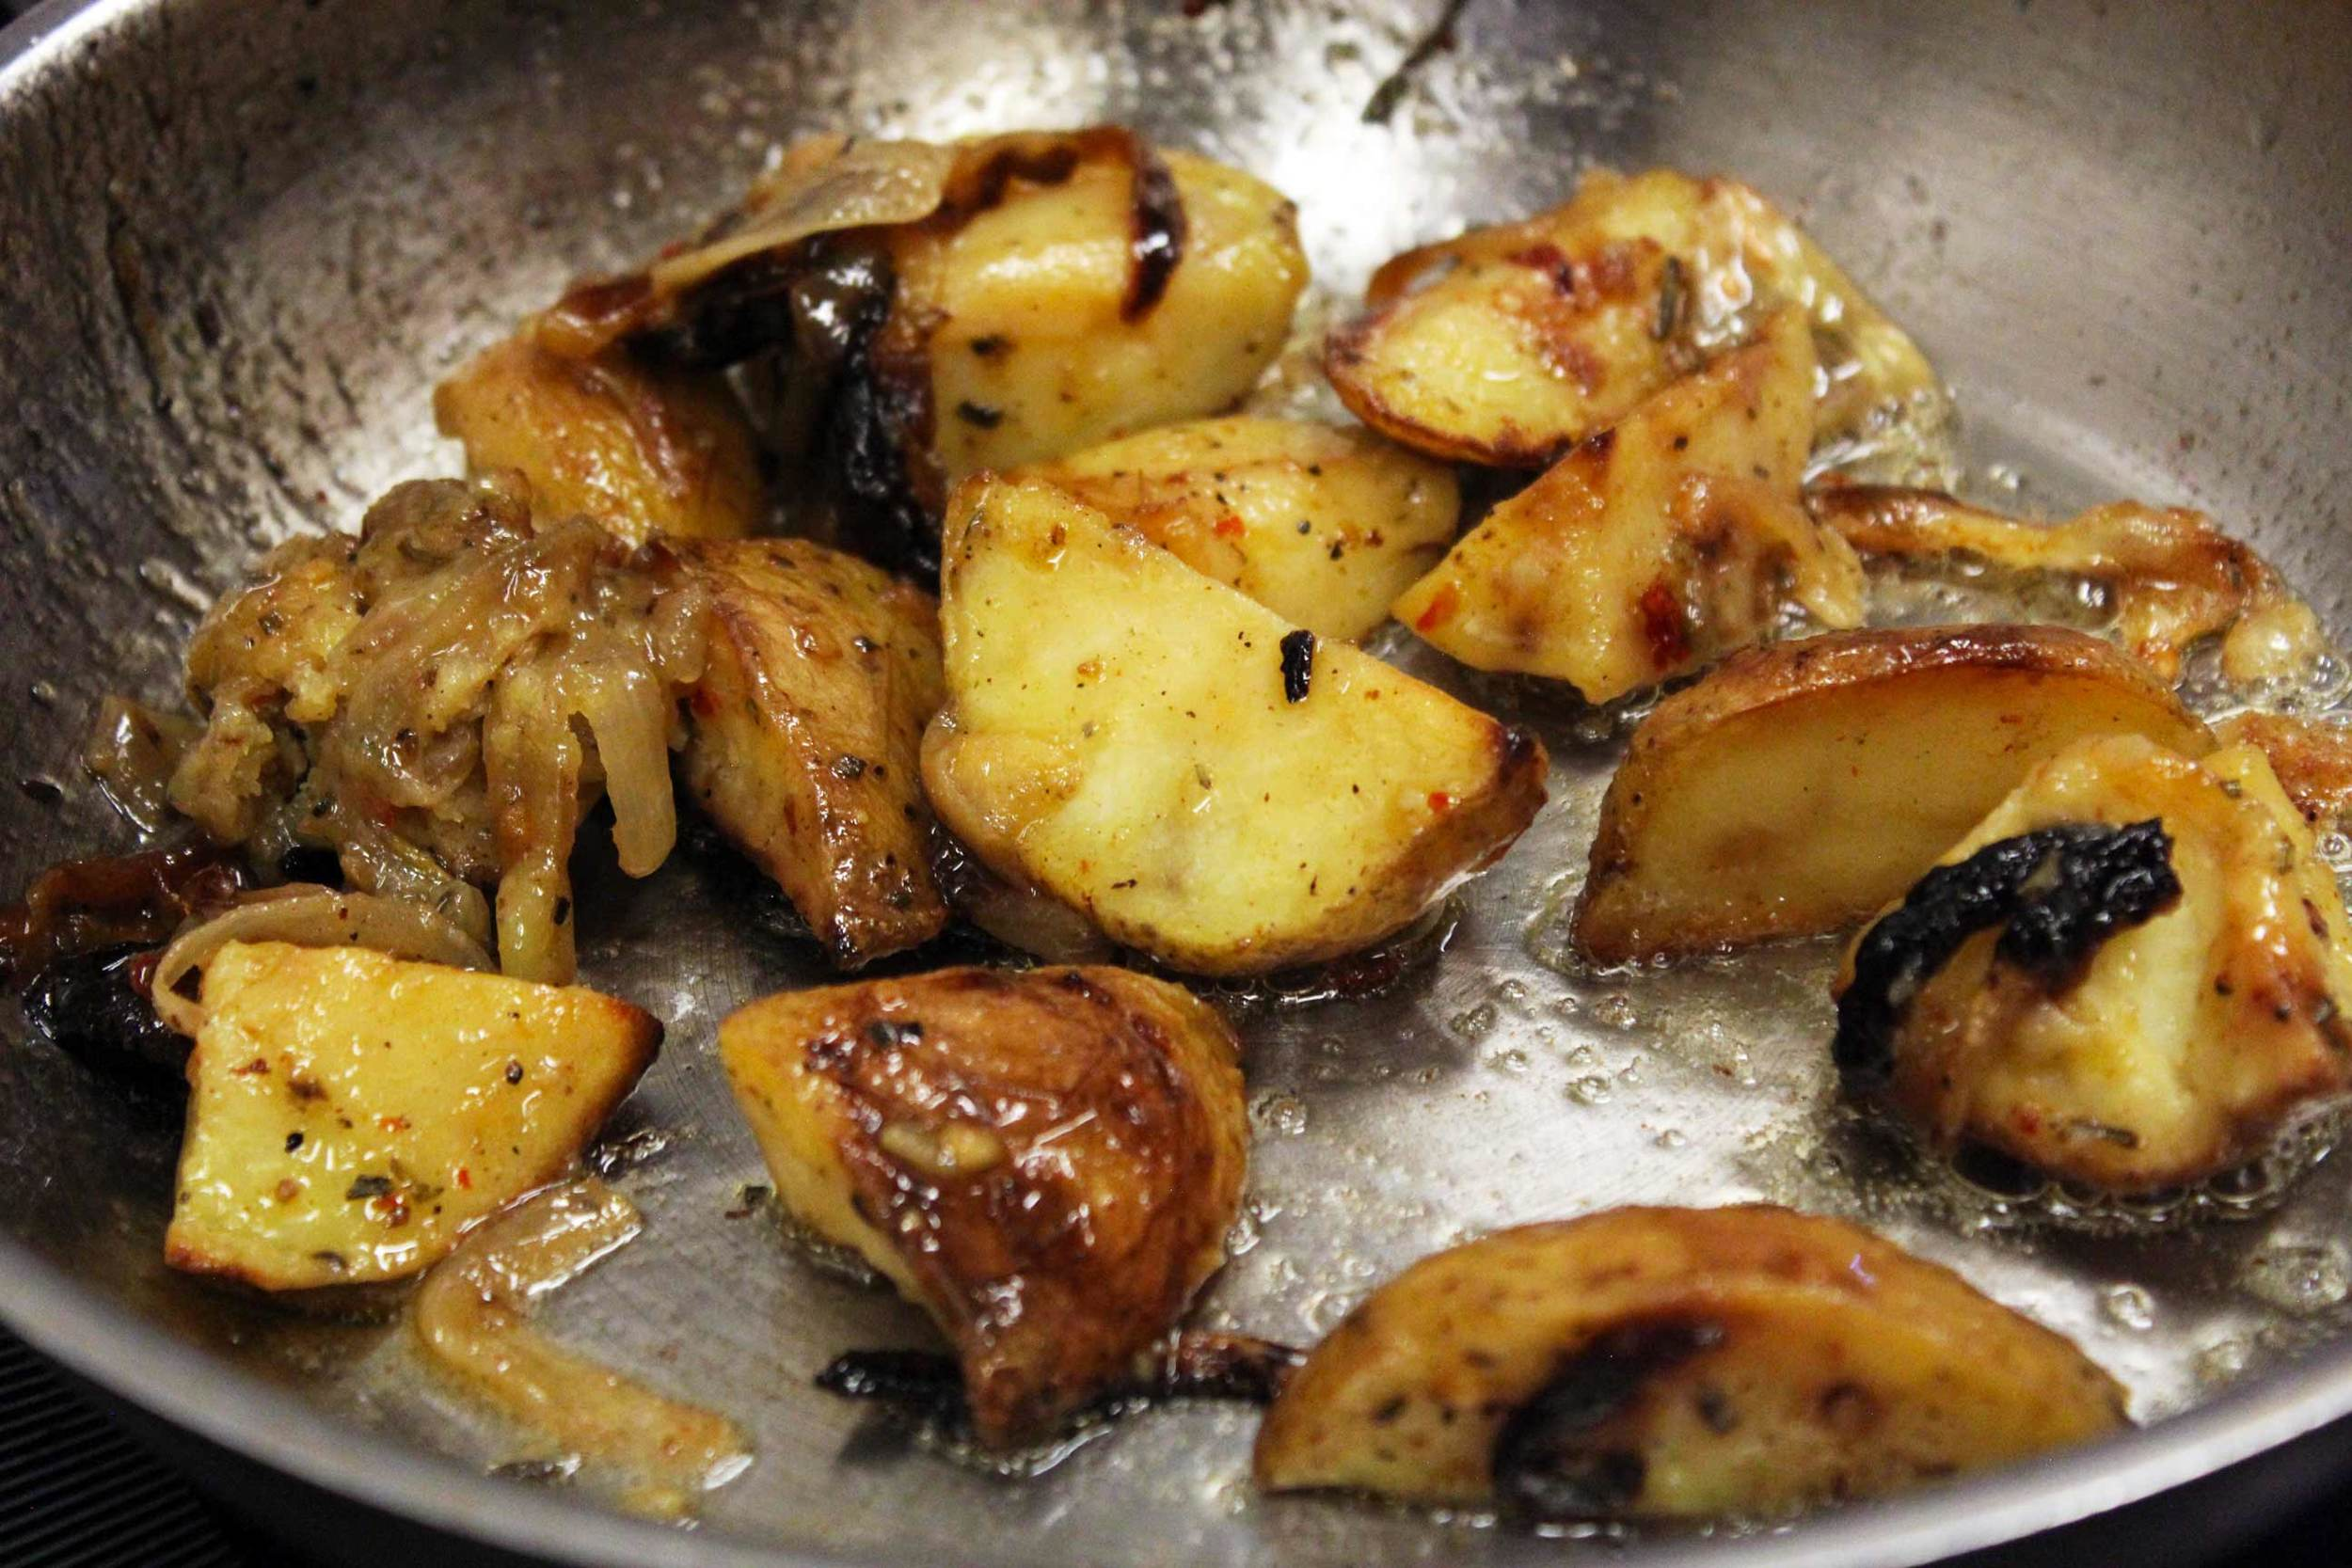 IMG_6173_Mtuccis_Potatoes.jpg